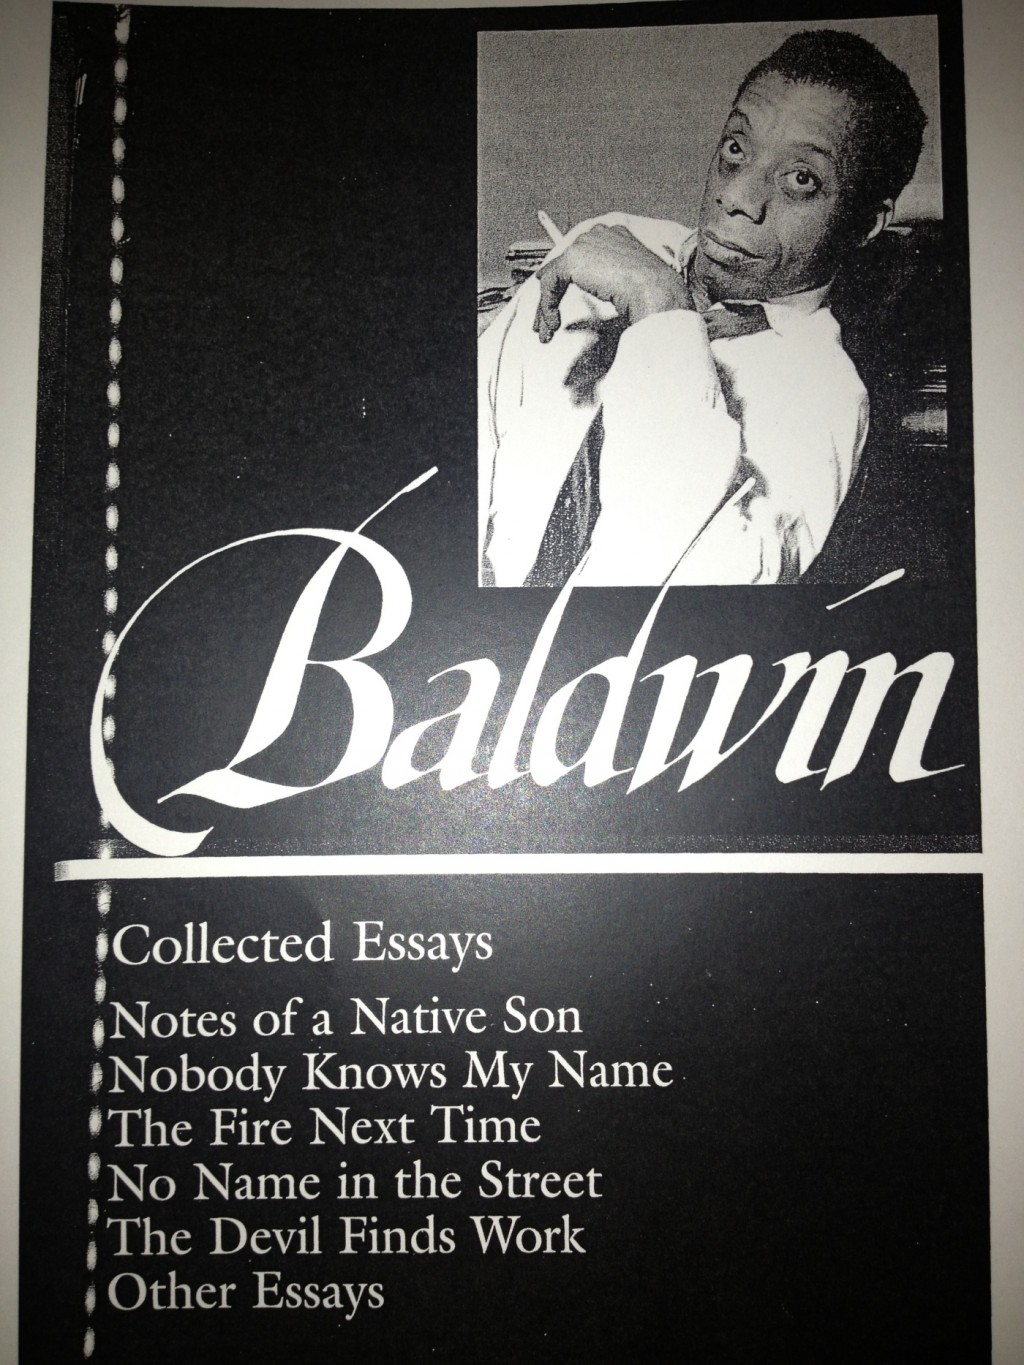 001 Img 4408w1400h9999 James Baldwin Collected Essays Essay Wondrous Table Of Contents Ebook Google Books Large